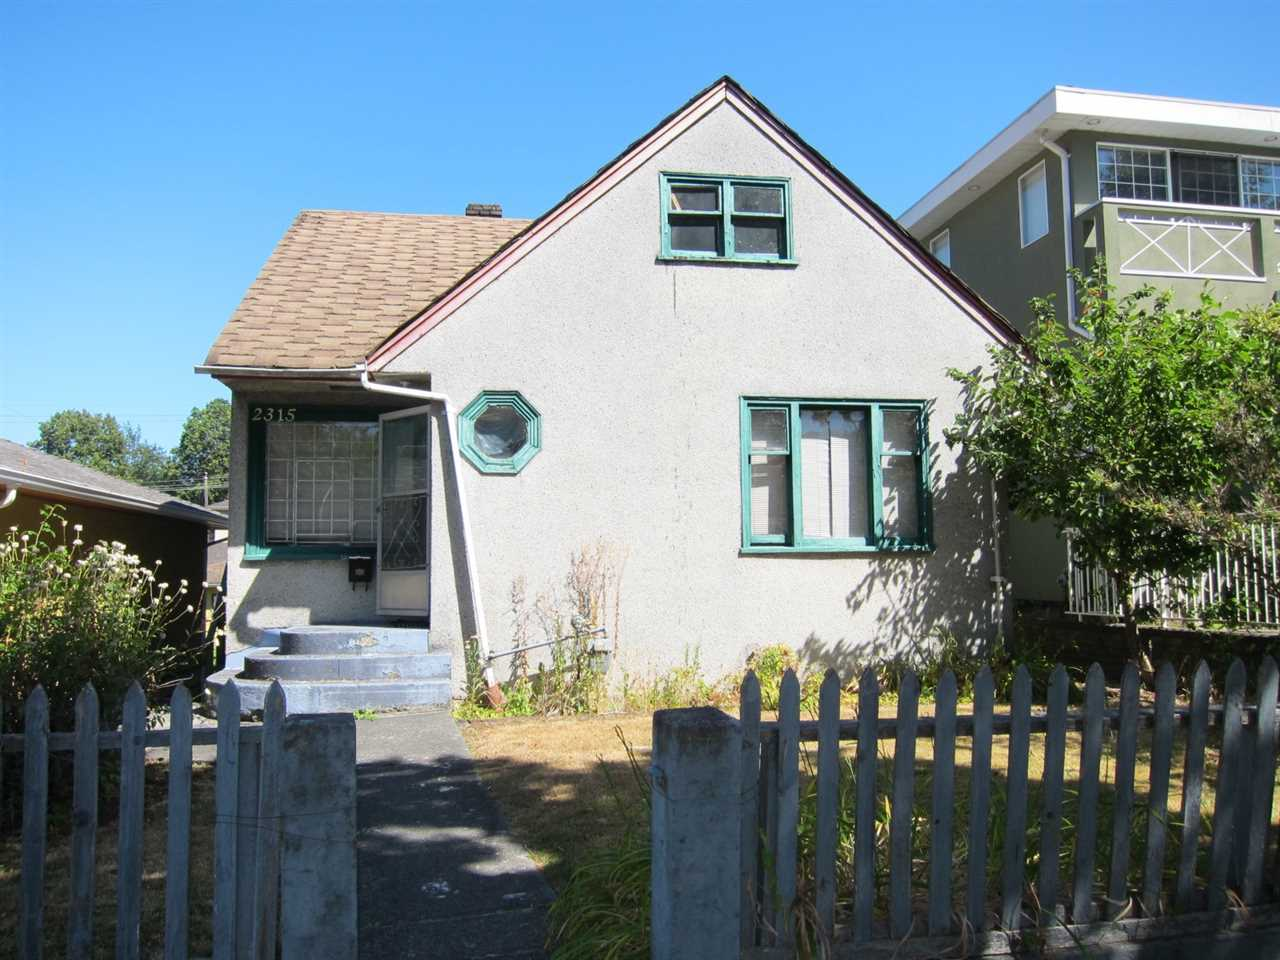 Main Photo: 2315 E 5TH Avenue in Vancouver: Grandview VE House for sale (Vancouver East)  : MLS® # R2200122